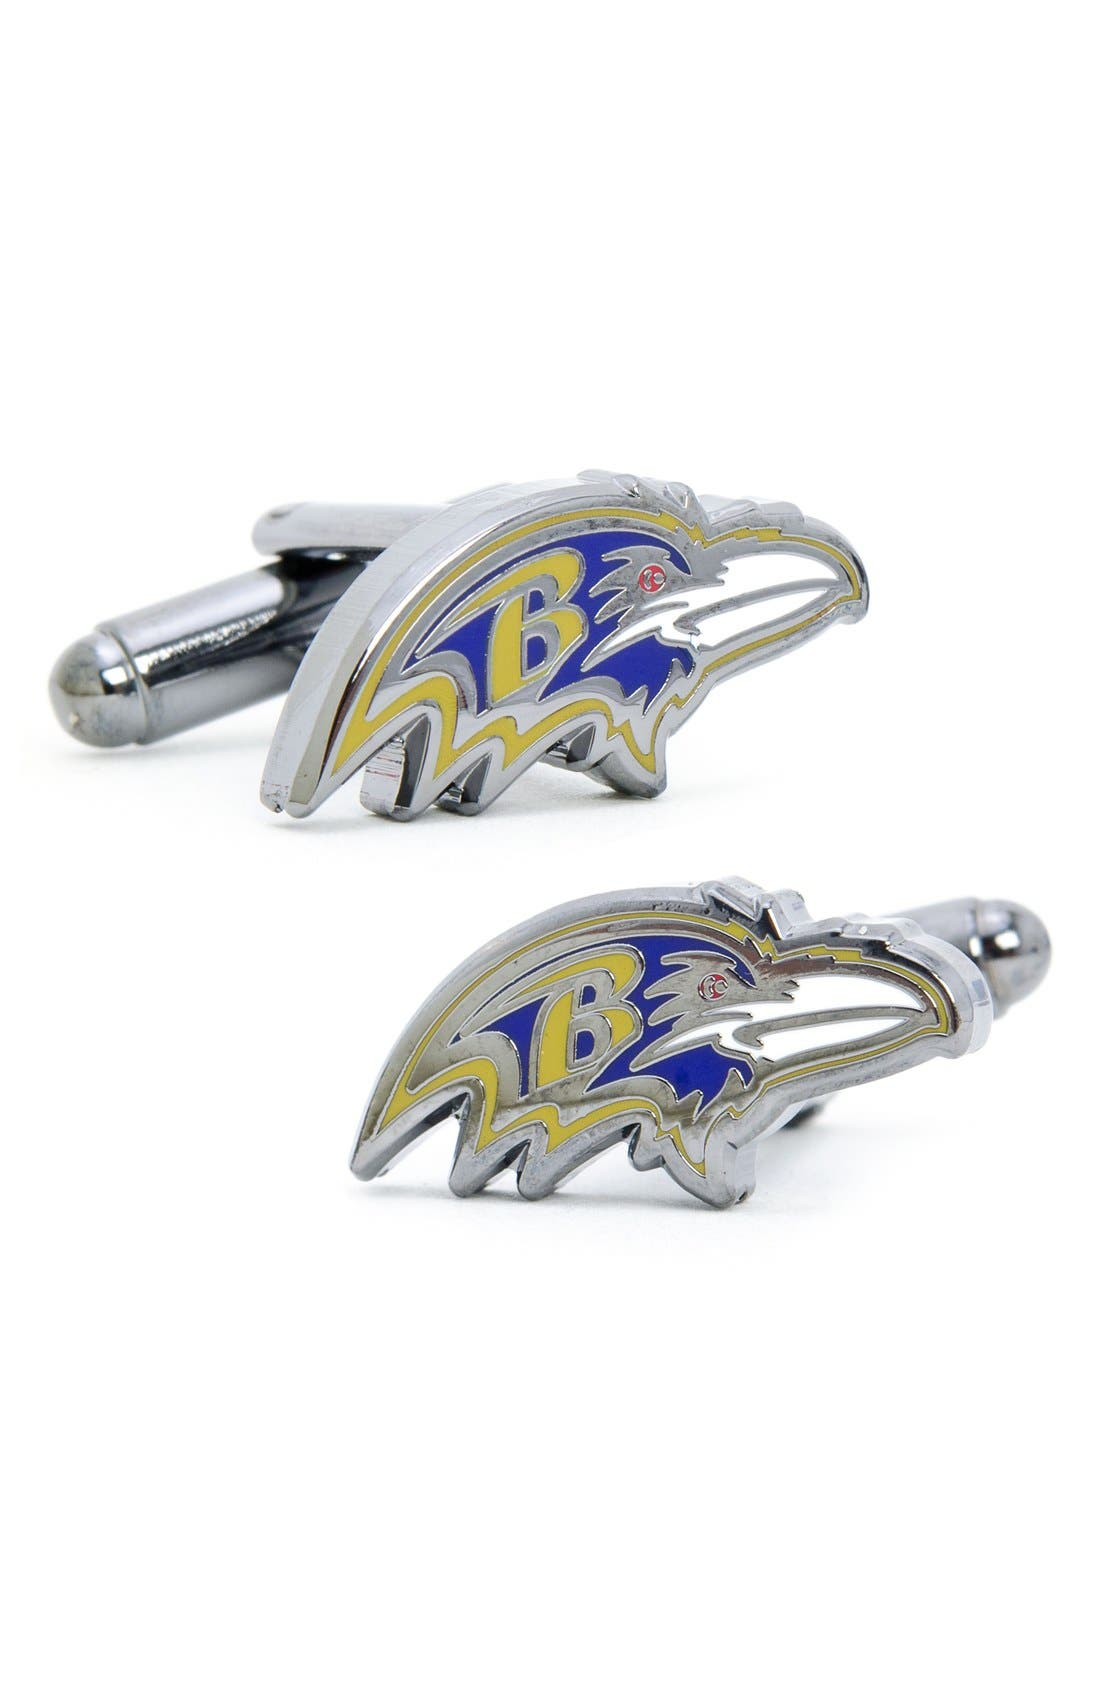 'Baltimore Ravens' Cuff Links,                             Main thumbnail 1, color,                             Purple